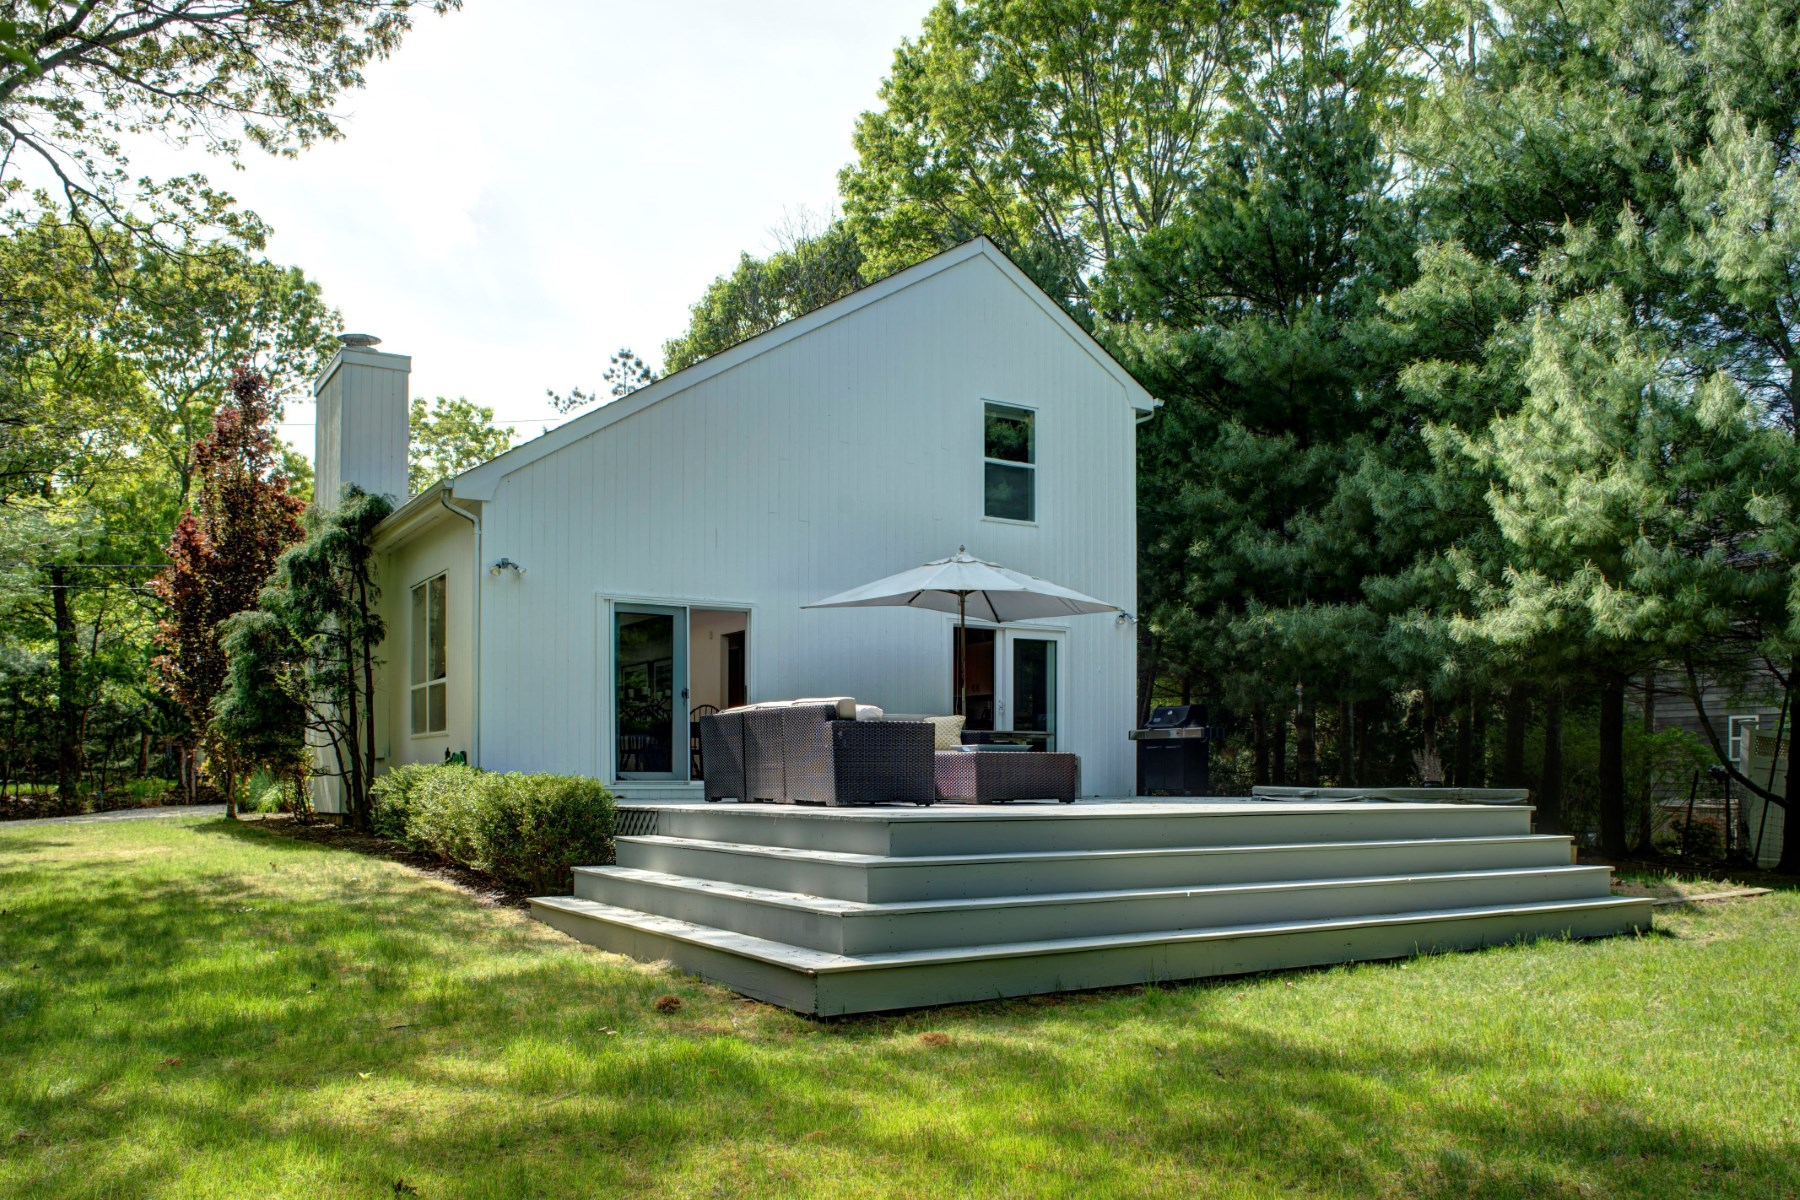 Single Family Home for Sale at Beach House Gem 17 Country Lane East Hampton, New York 11937 United States